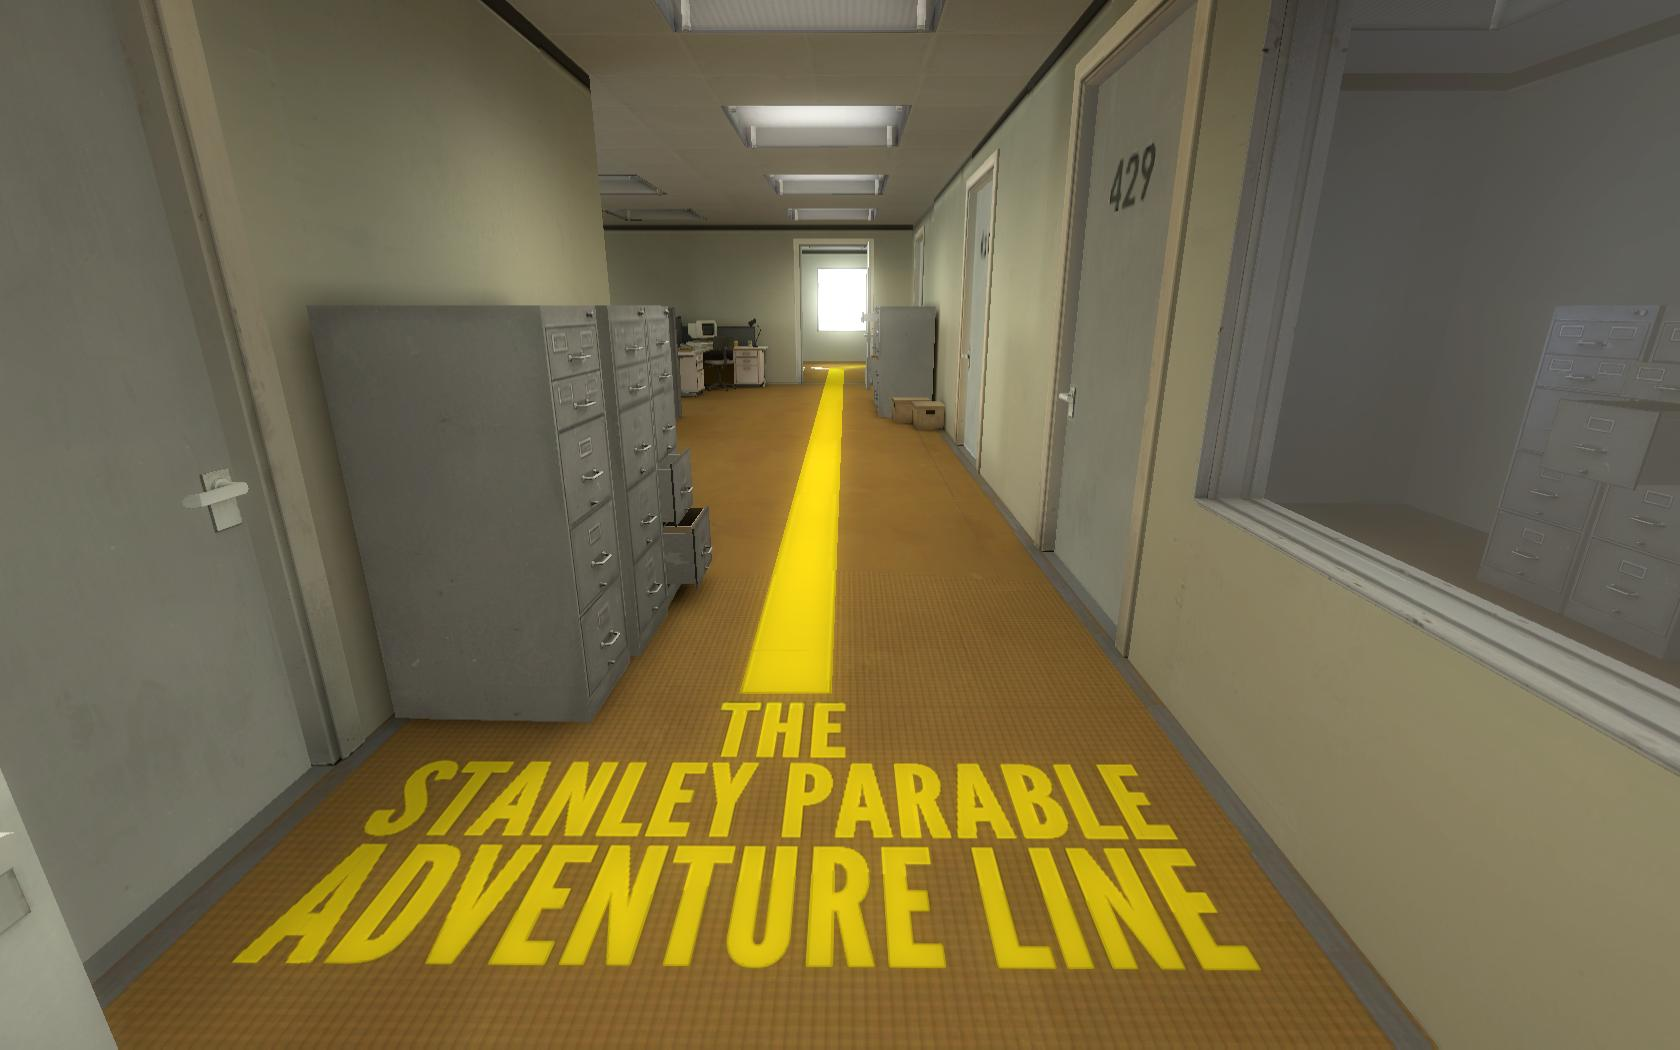 The Stanley Parable [Steam Gift | RU CIS]